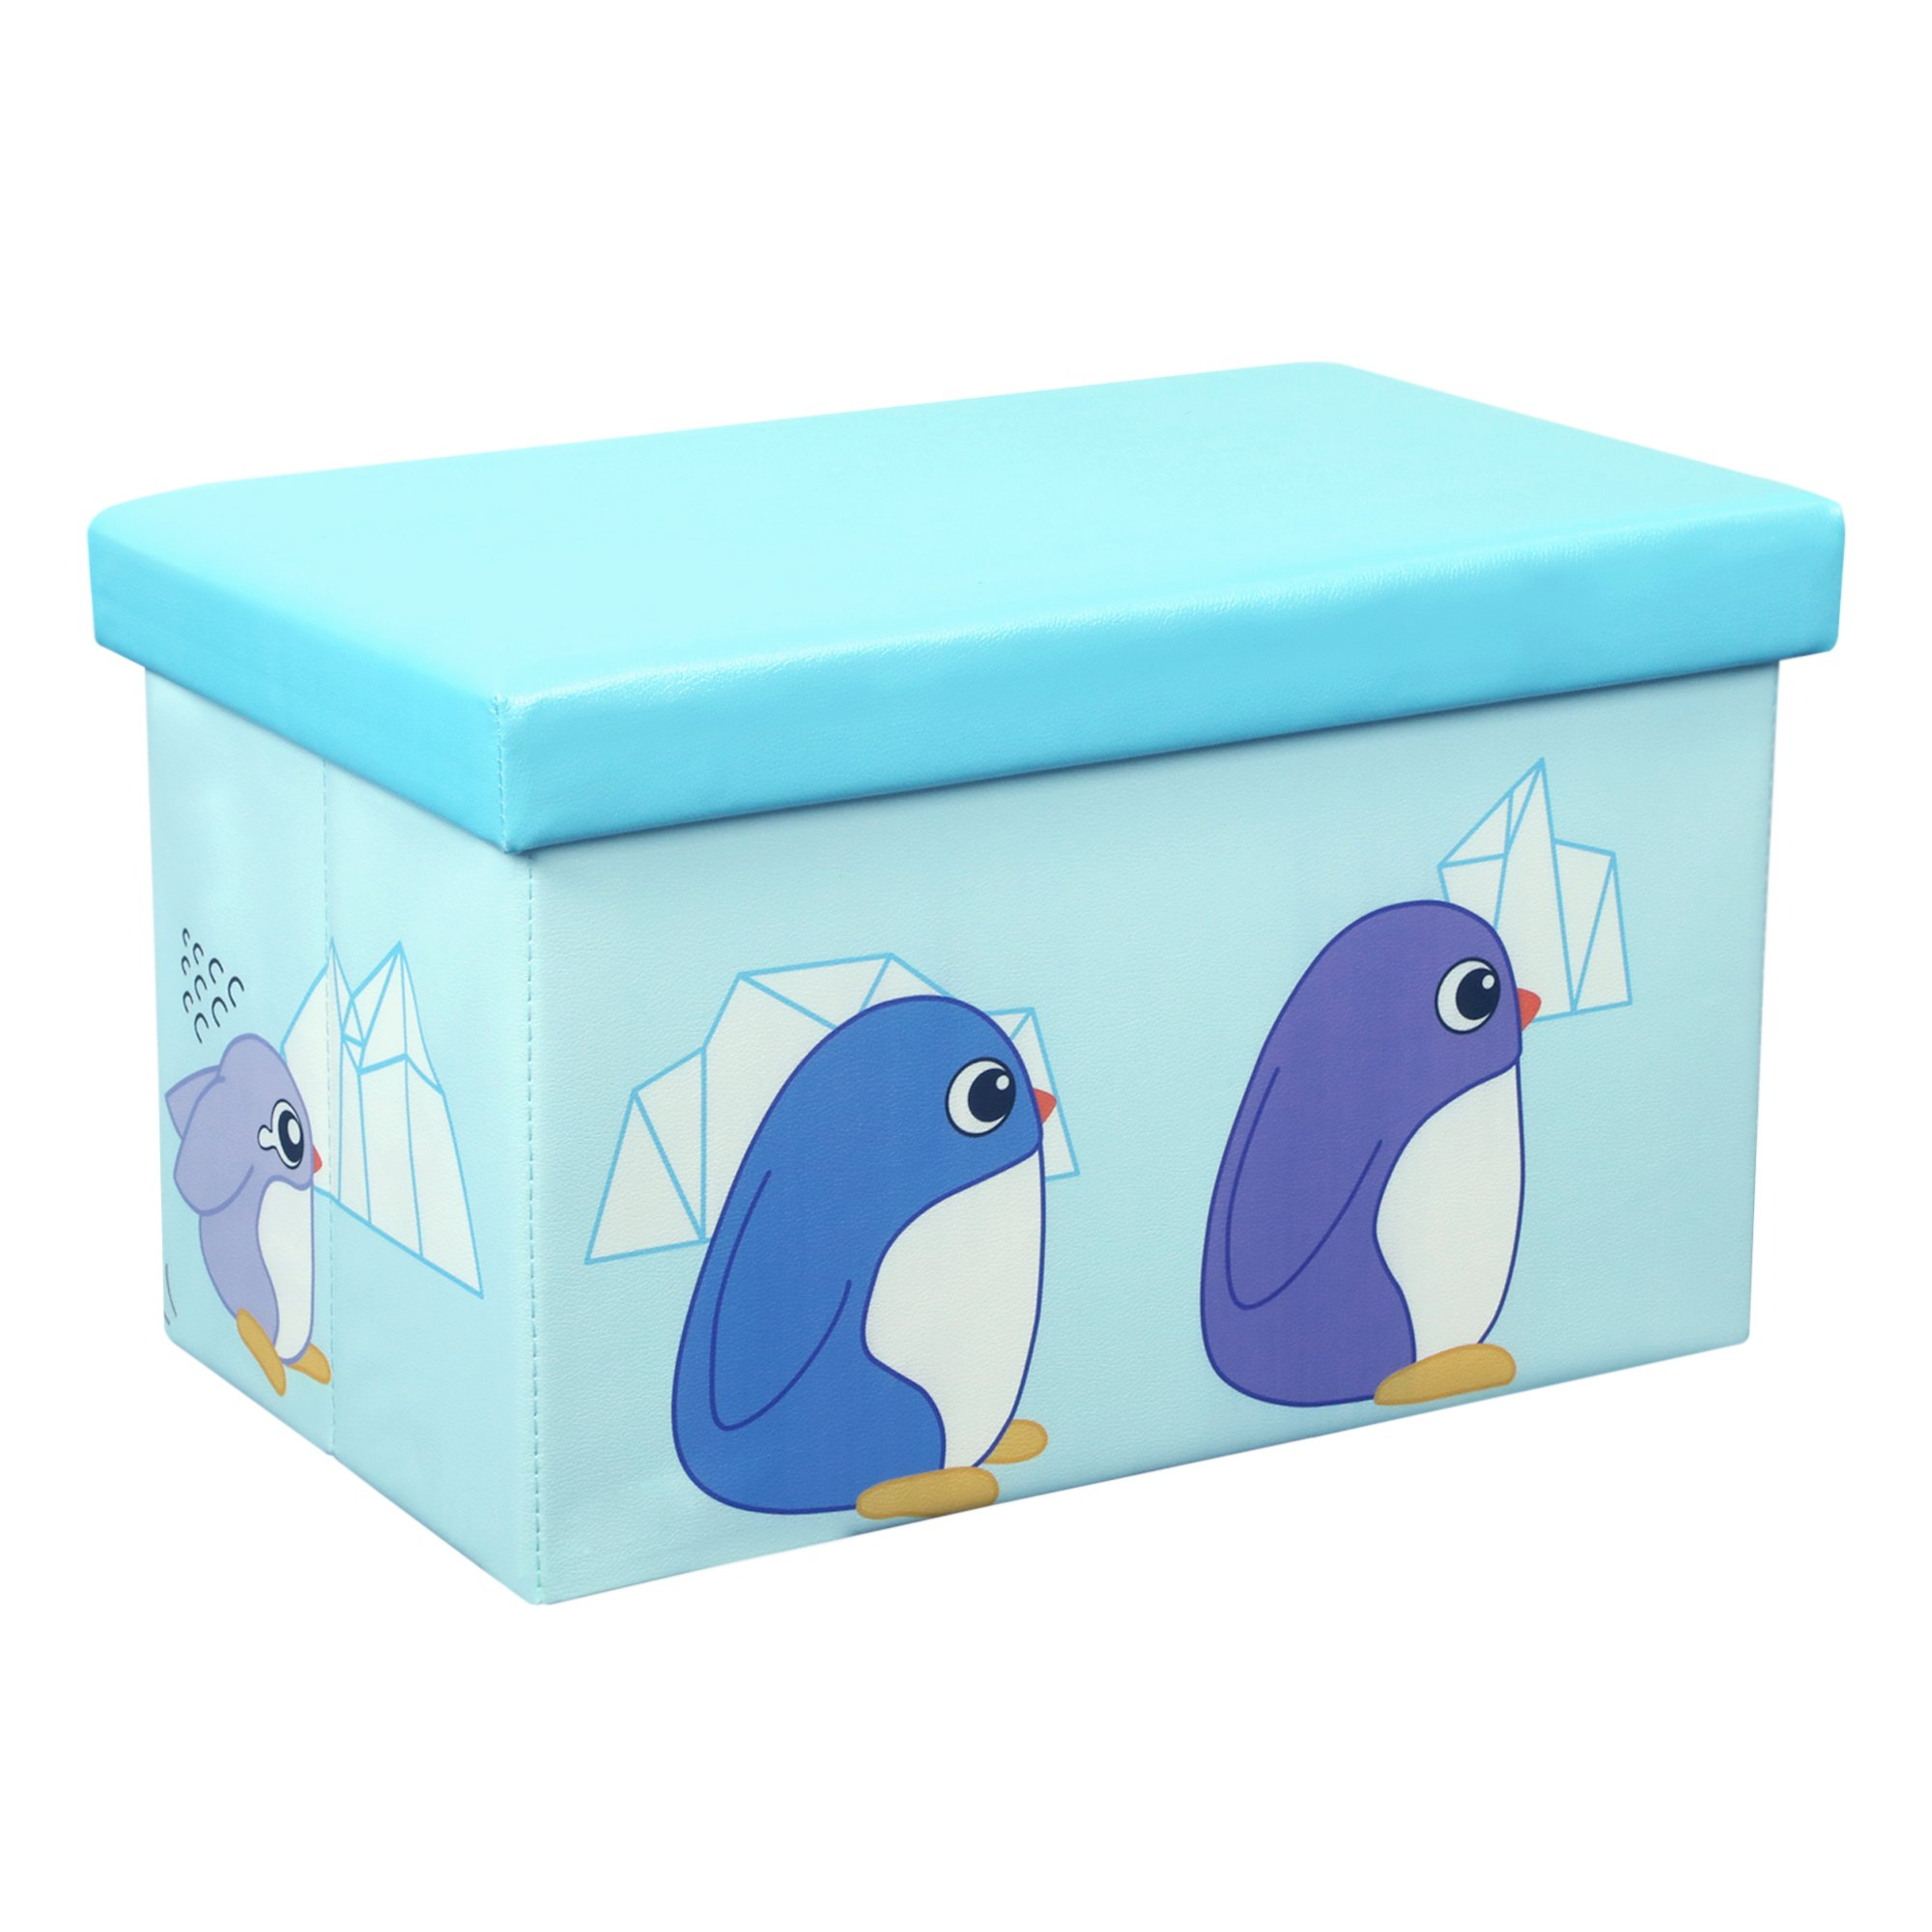 Otto & Ben 23'' Toy Box - Folding Storage Ottoman Chest with Foam Cushion Seat, Washable Faux Leather Foot Rest Stools for Kids, Penguin Family